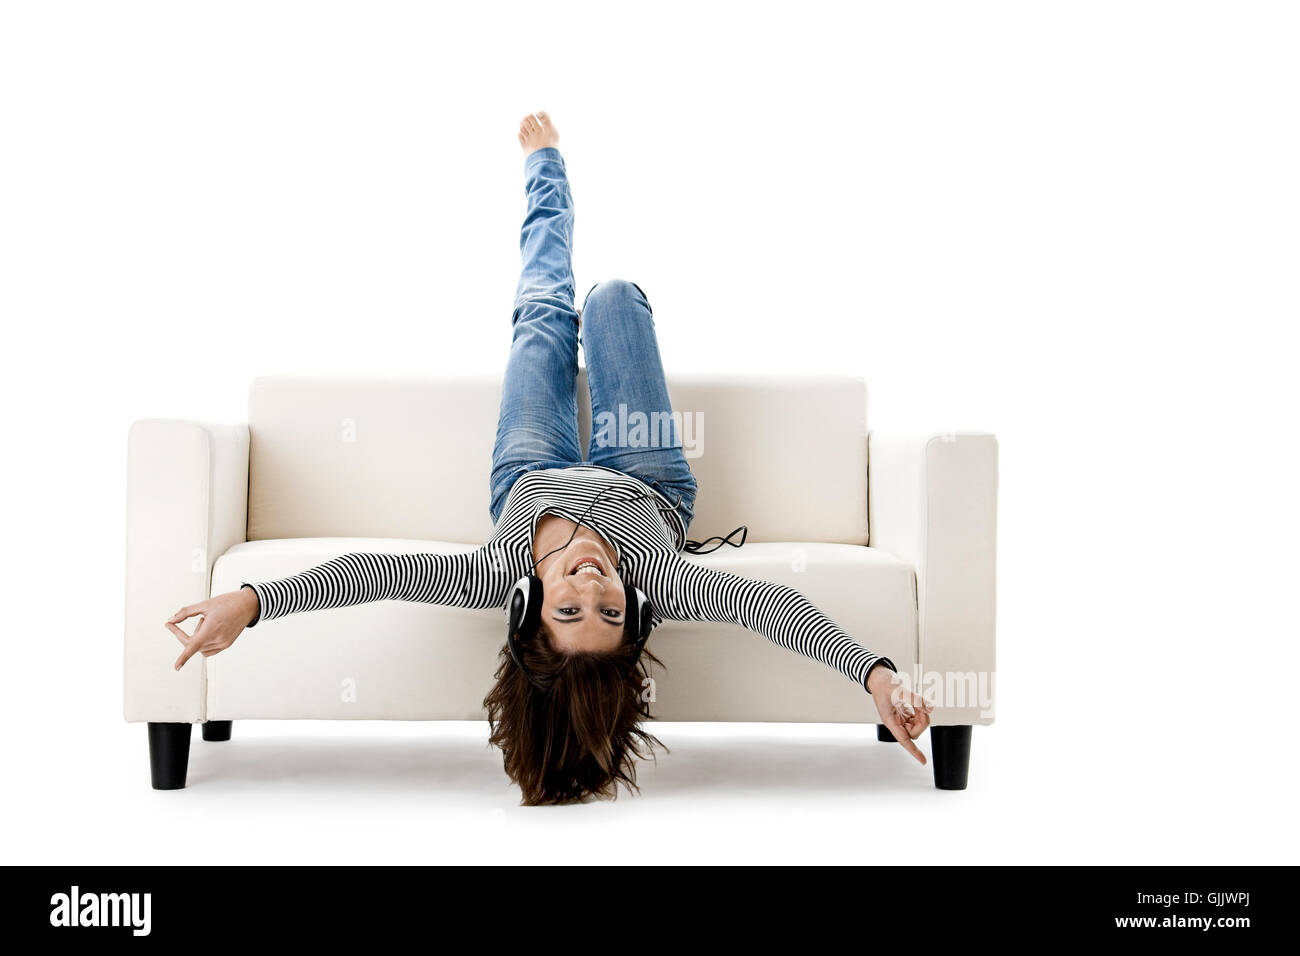 woman spare time free time - Stock Image